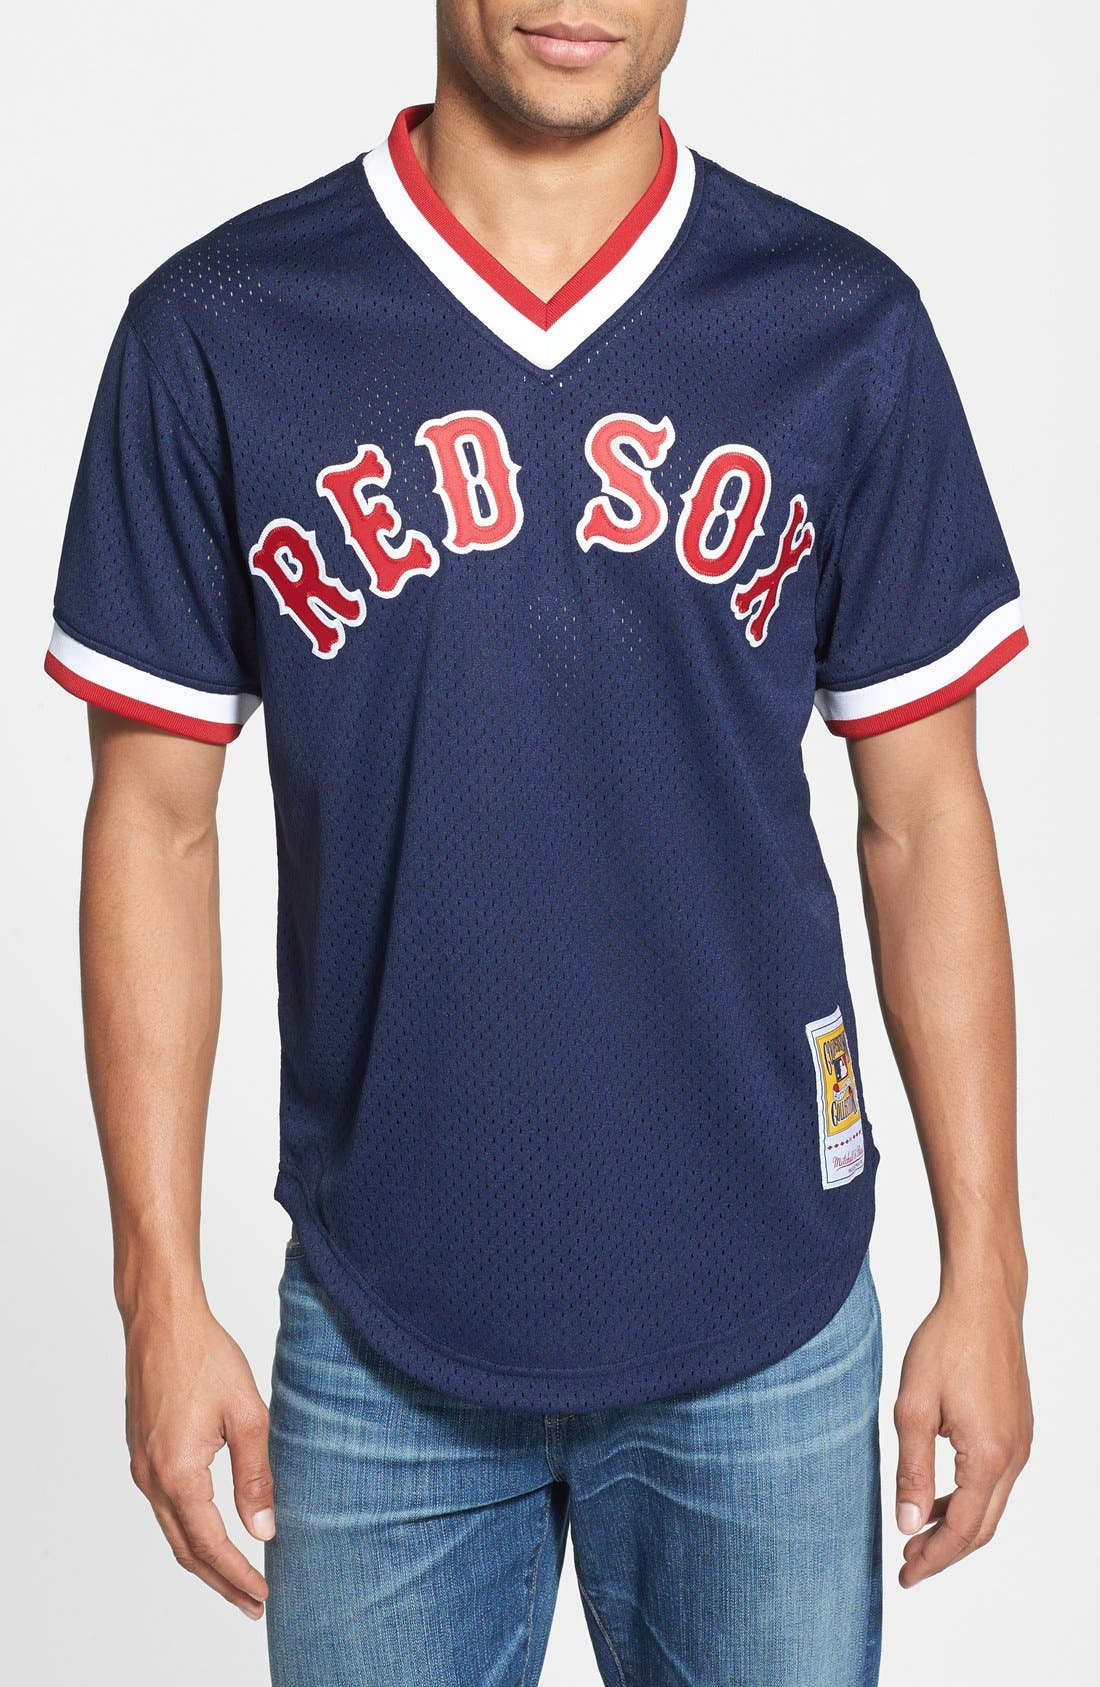 Alternate Image 1 Selected - Mitchell & Ness 'Ted Williams - Boston Red Sox' Authentic Mesh BP Jersey